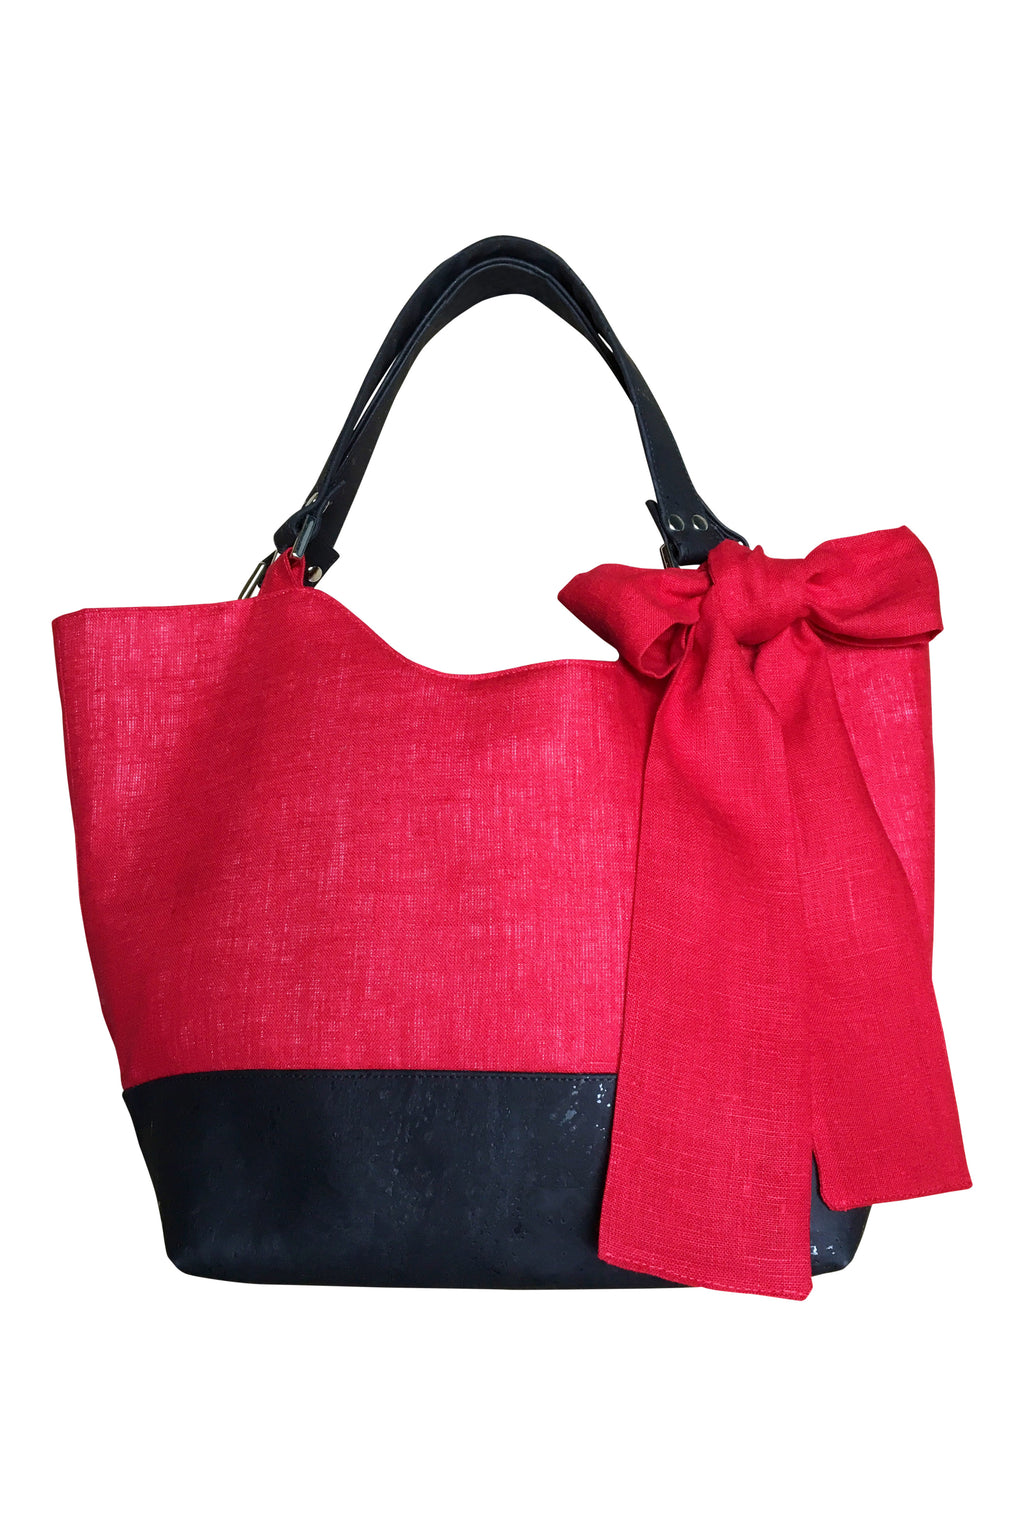 Go Team! Red and Black Cabana Tote